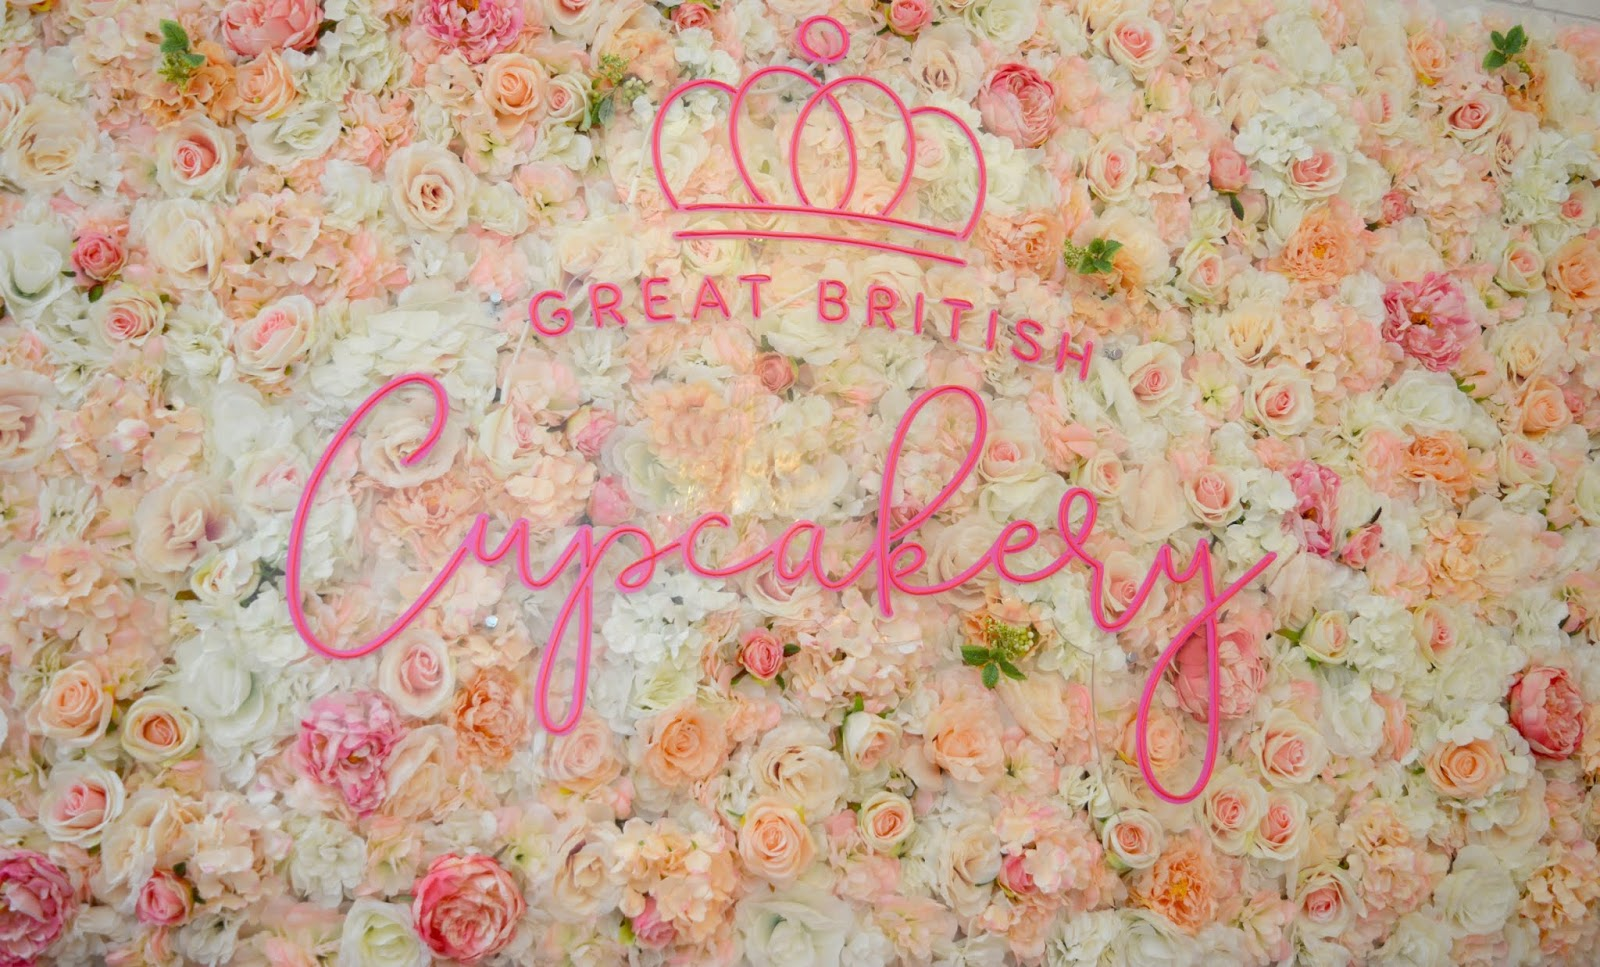 Flower Wall - Great British Cupcakery Instagram Hot Spot of Newcastle